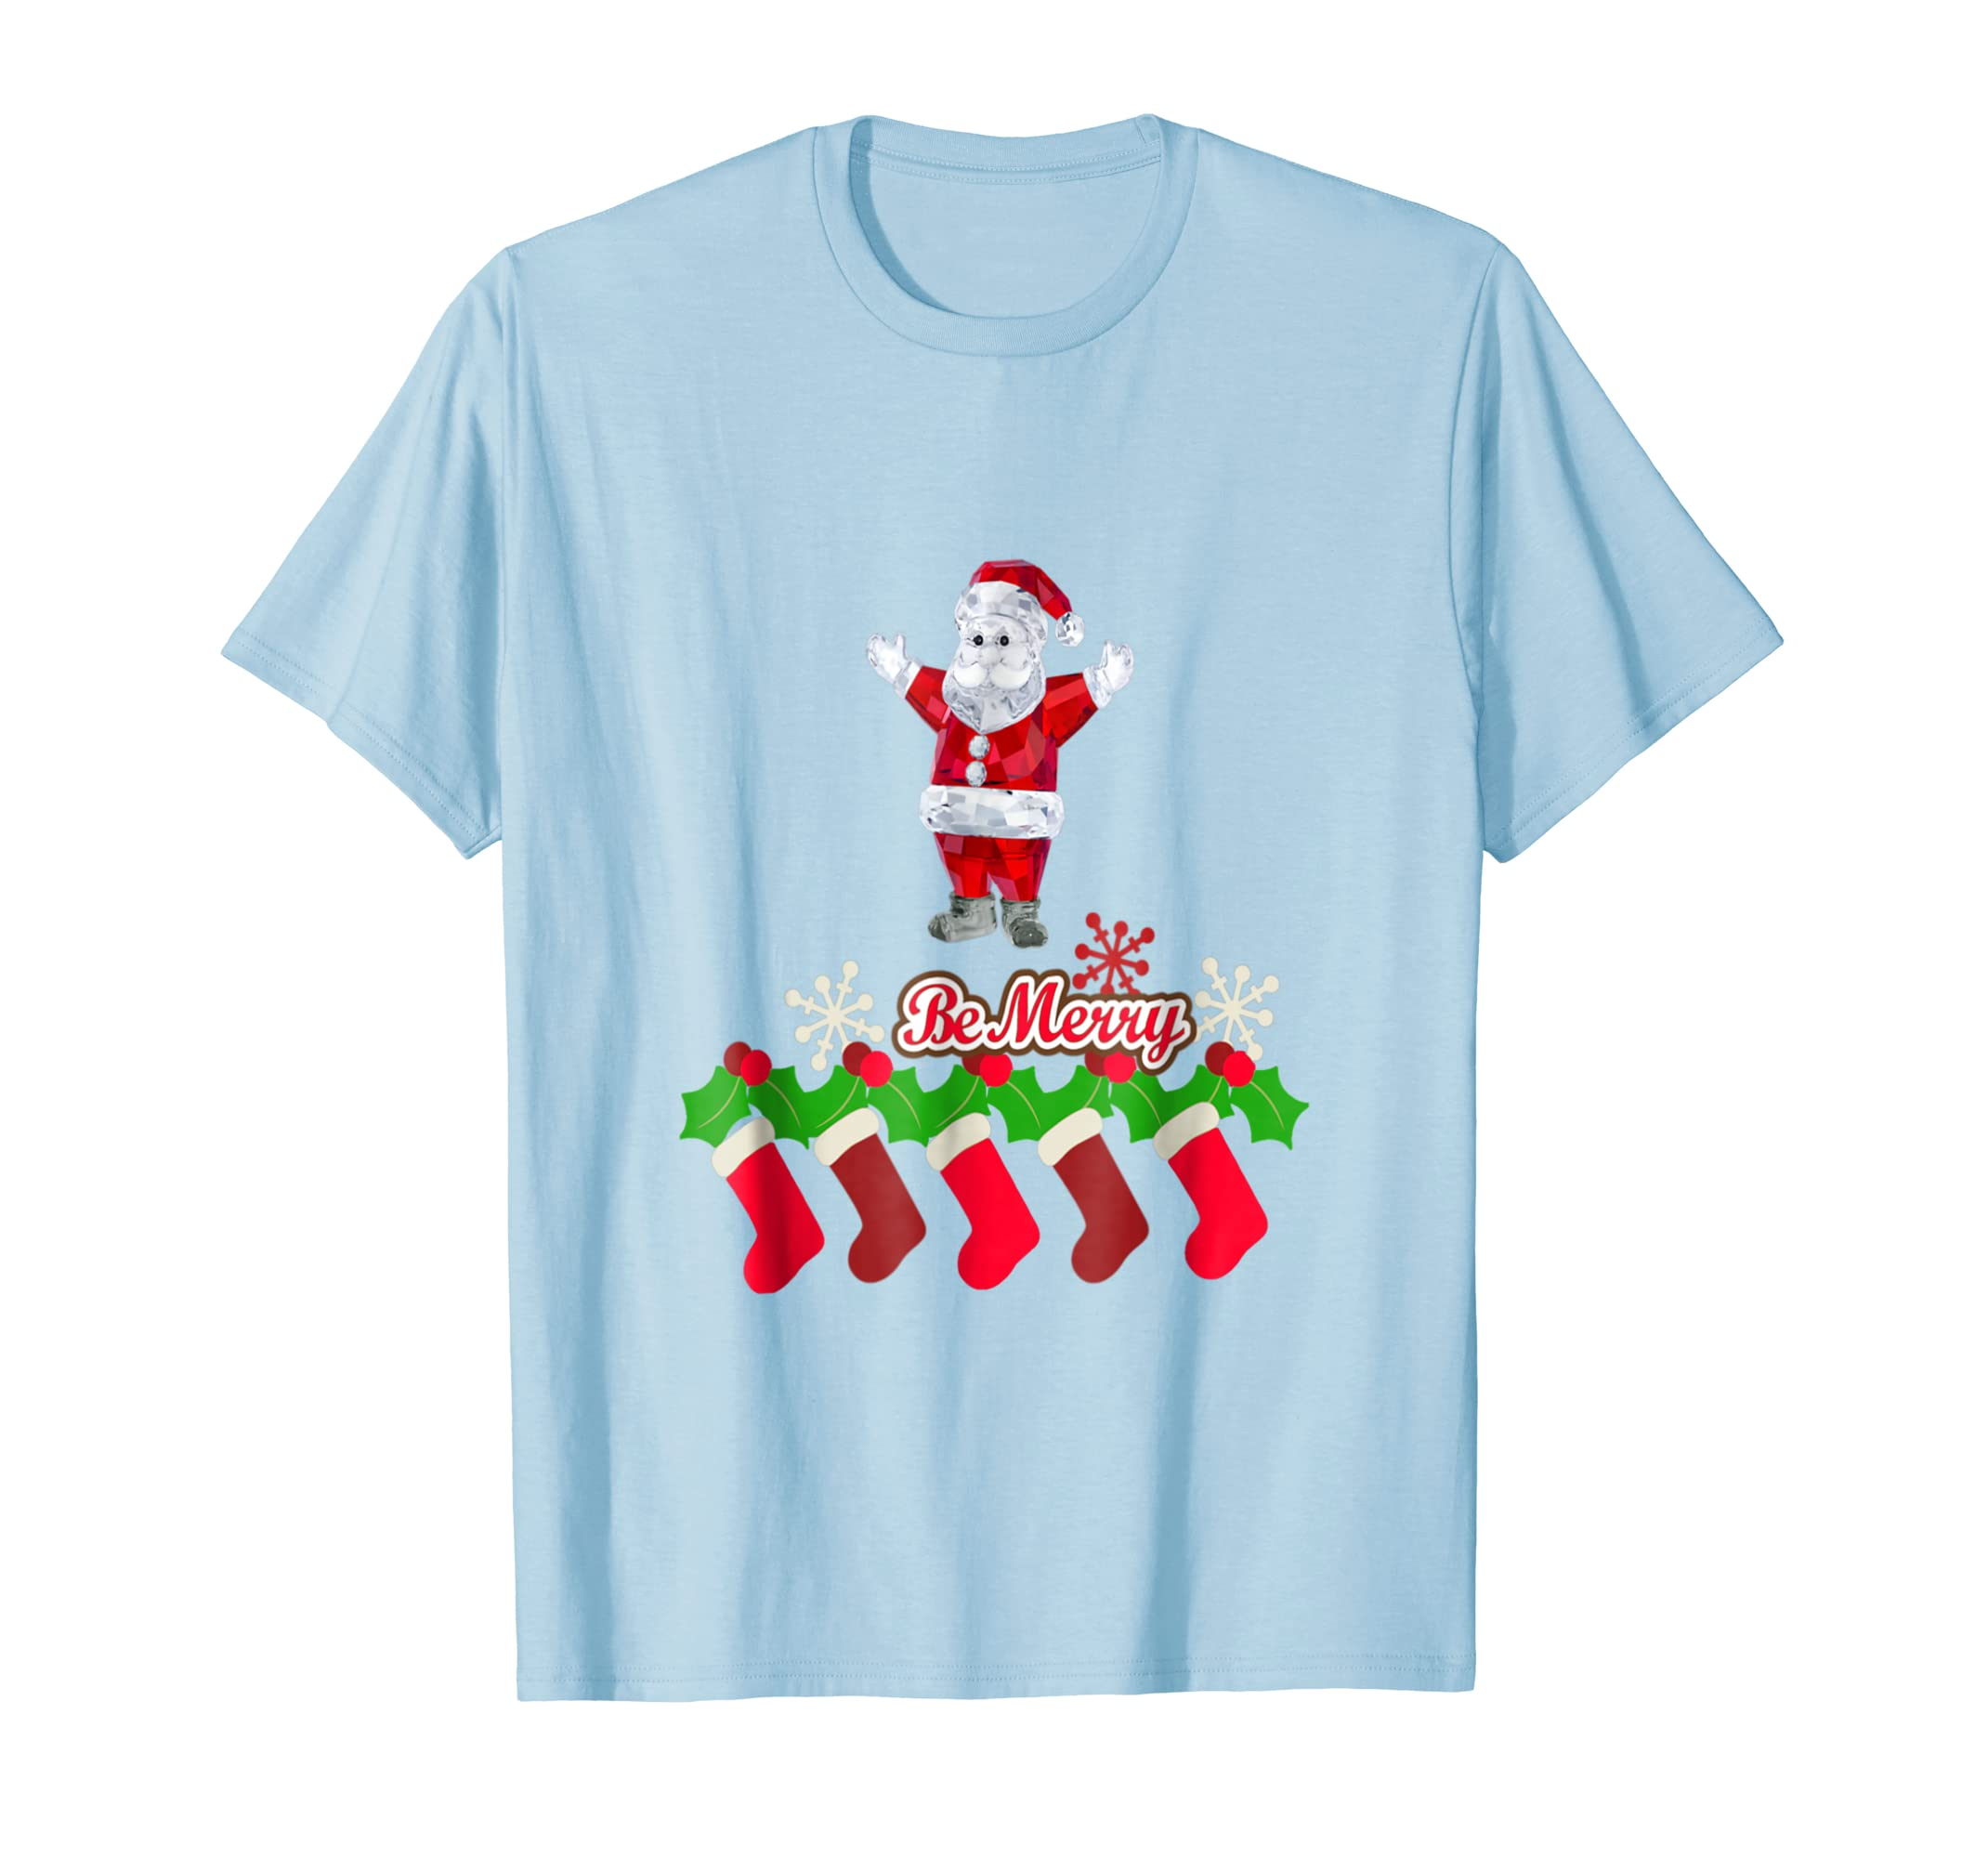 Be Merry, Merry Christmas, Funny gift 2019 shirt-azvn